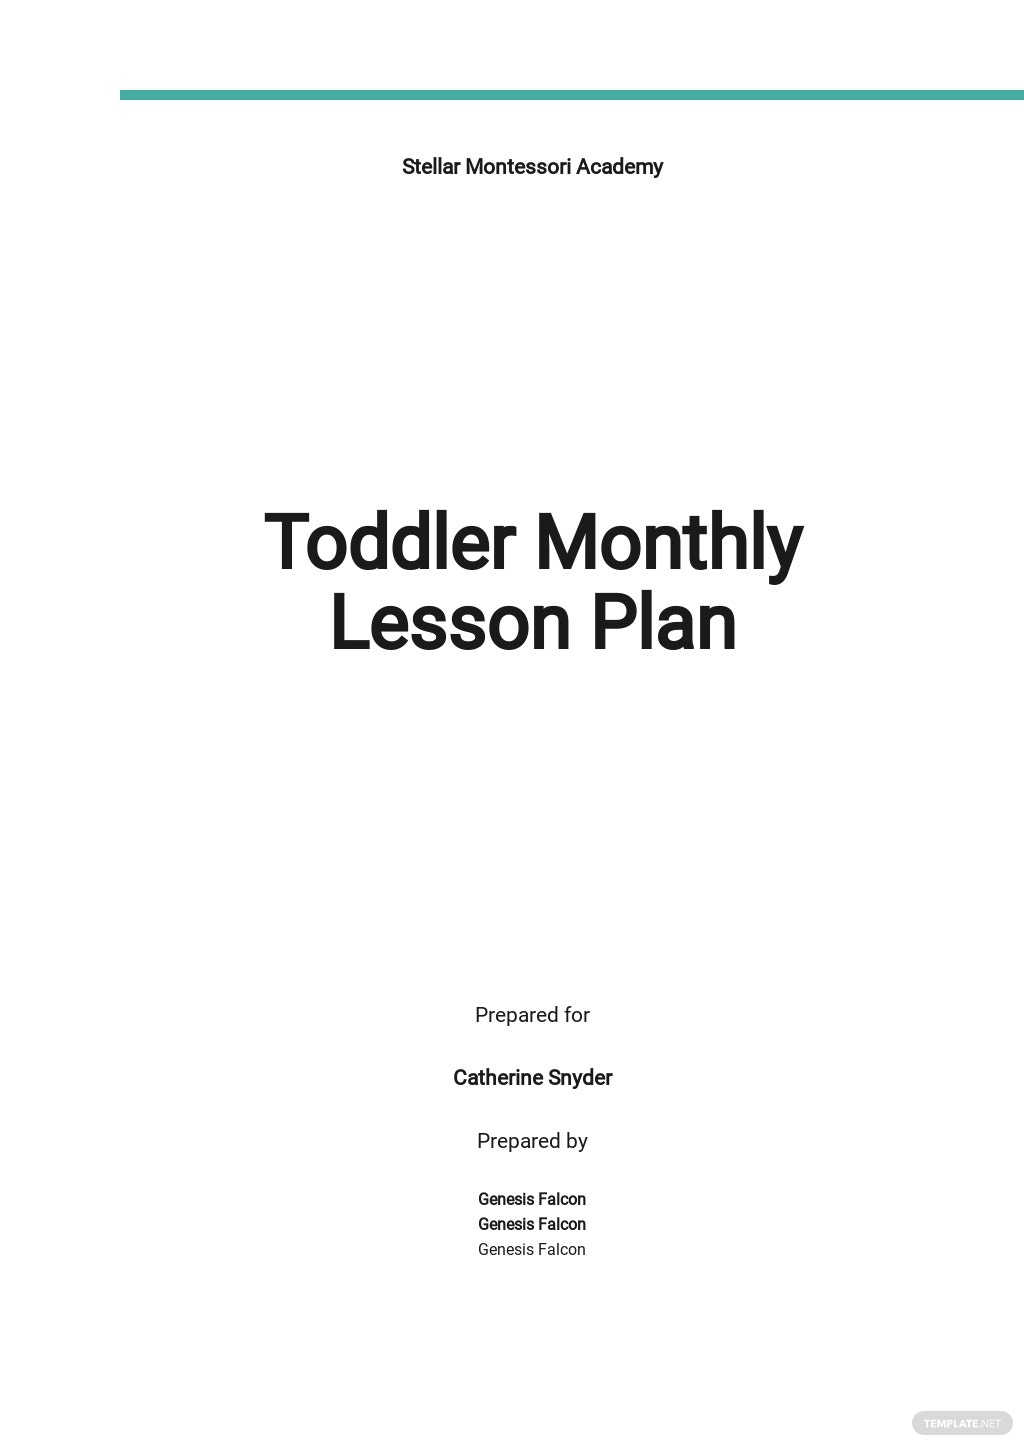 Toddler Monthly Lesson Plan Template.jpe